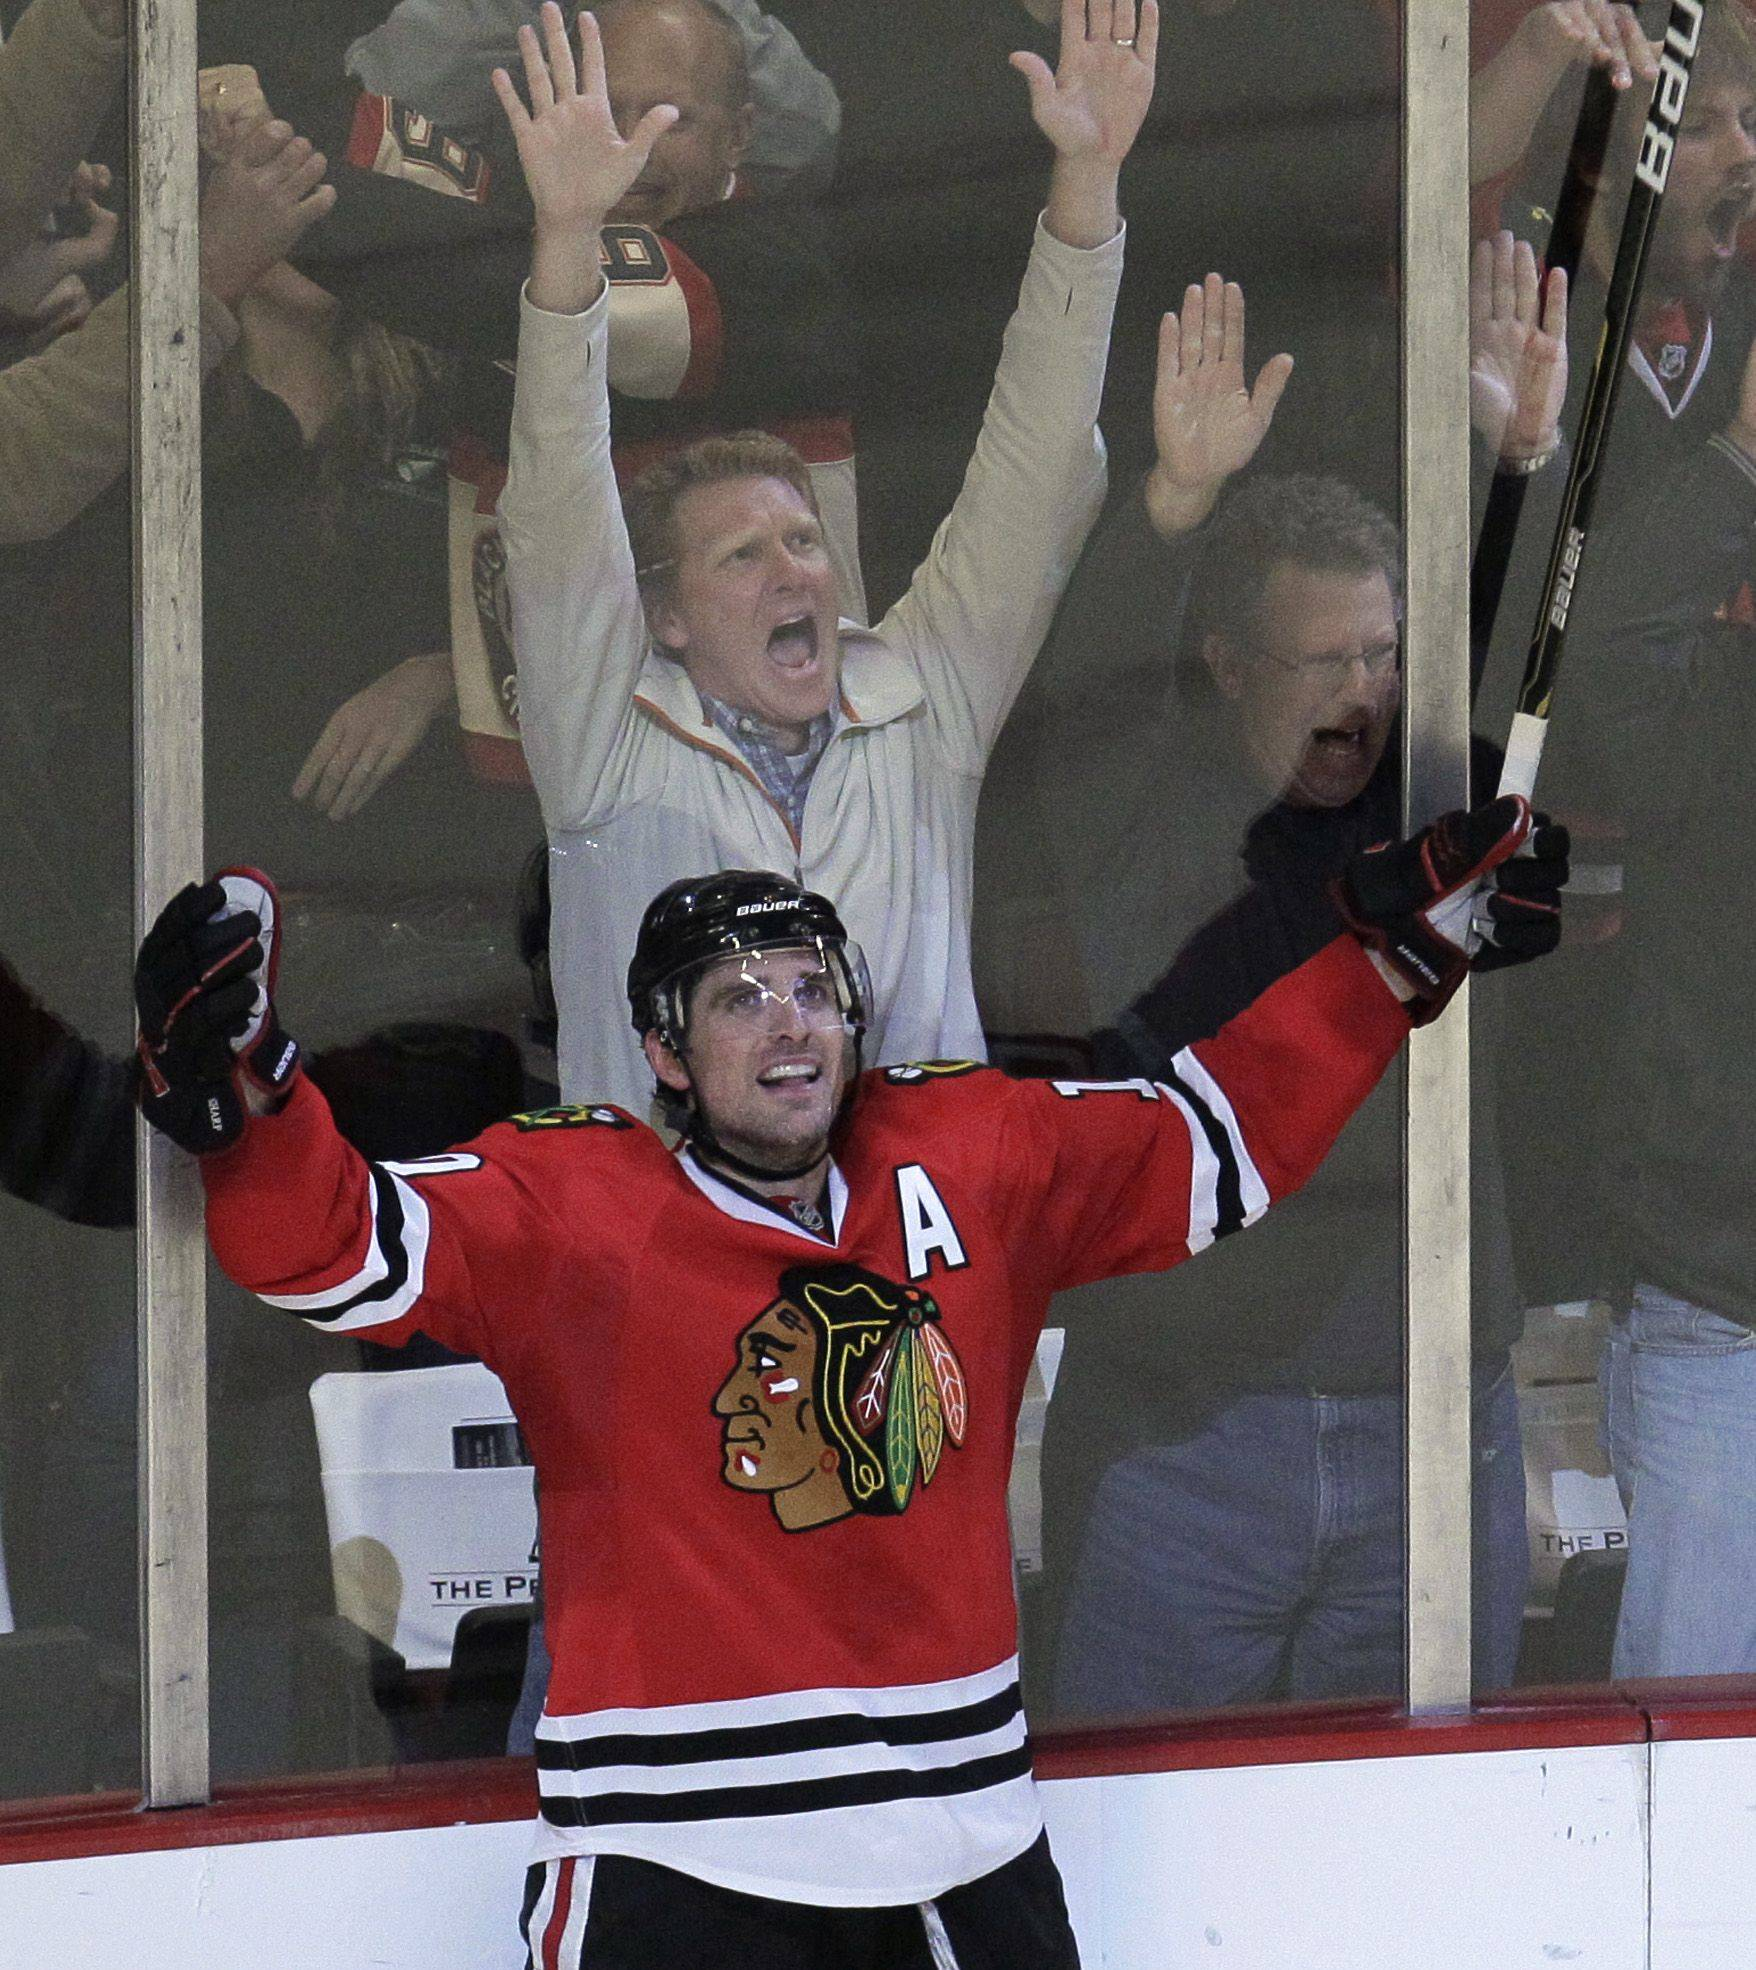 Patrick Sharp celebrates after his goal gave the Blackhawks an overtime victory over the Blues on Monday night.